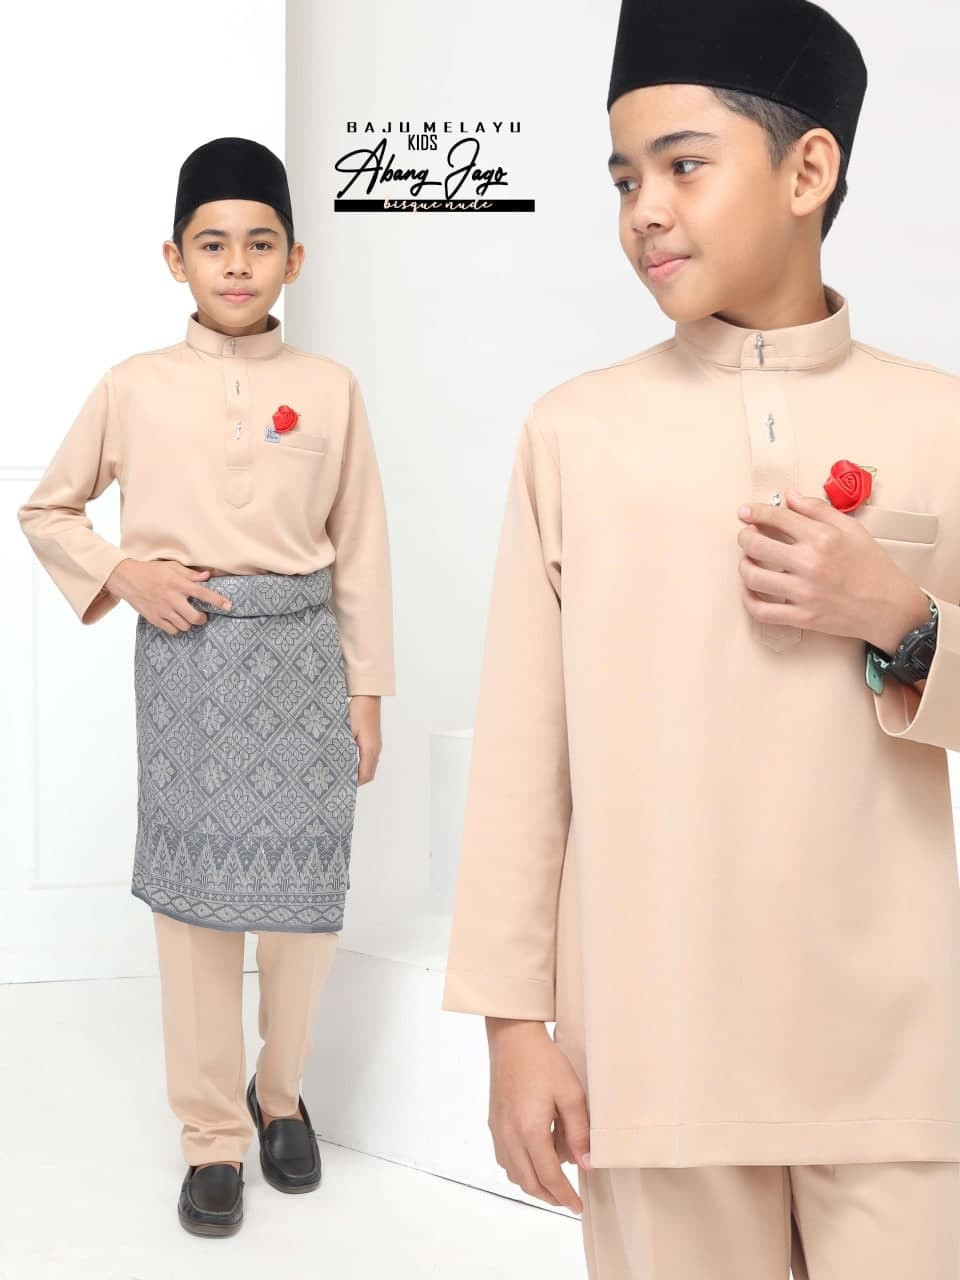 Bang Jago Kids In Bisque Nude